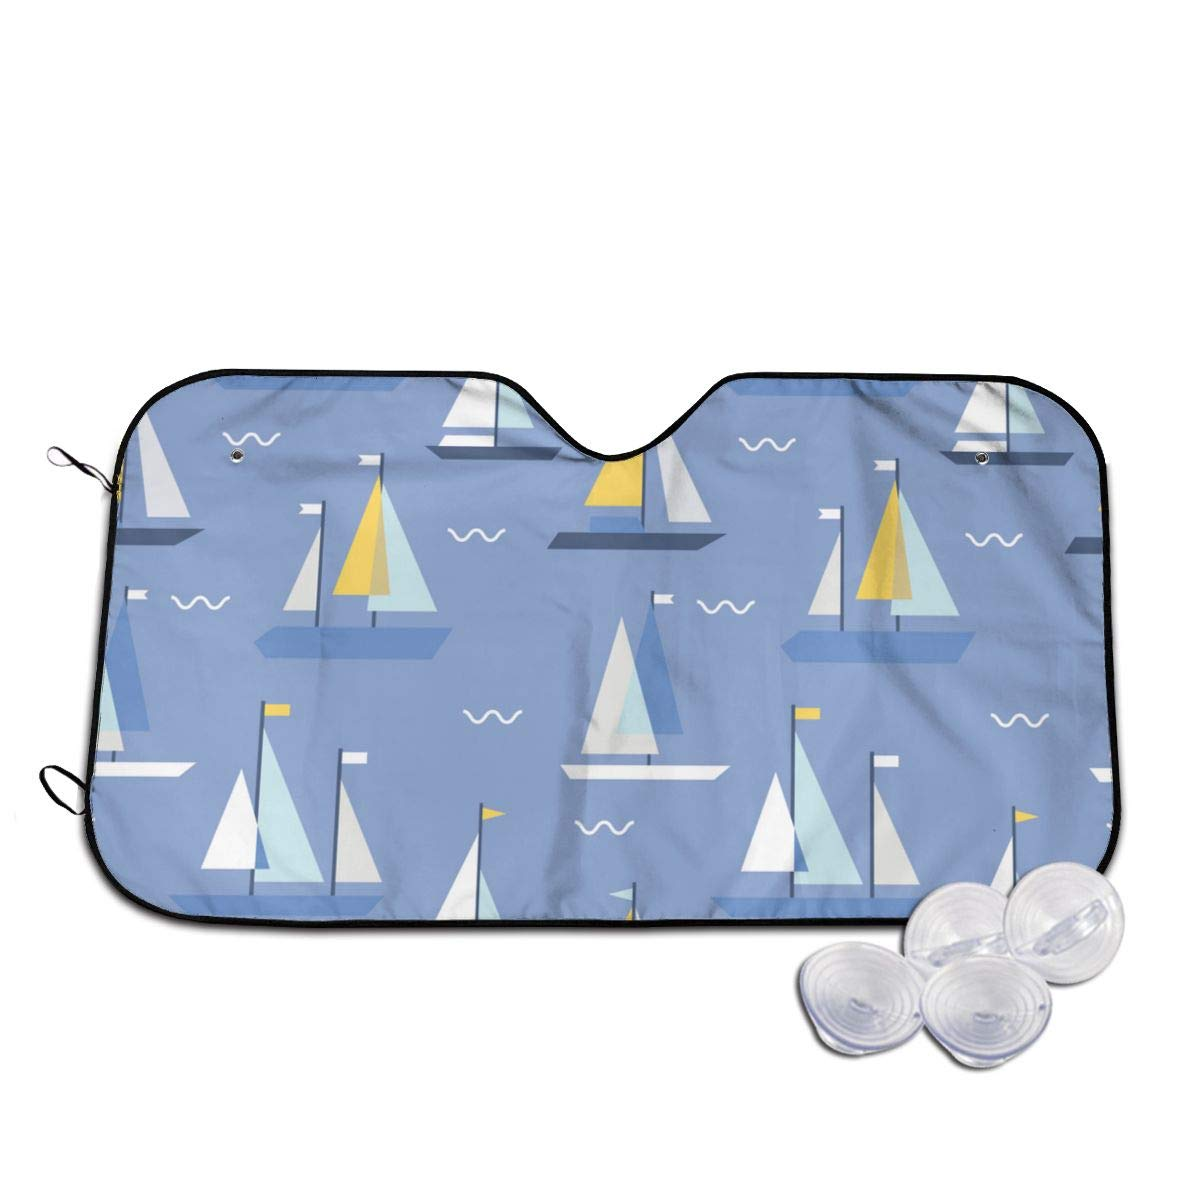 Geometric Sailing Boats Windshields online shopping Sun 3D La New products world's highest quality popular Long Printed Shade